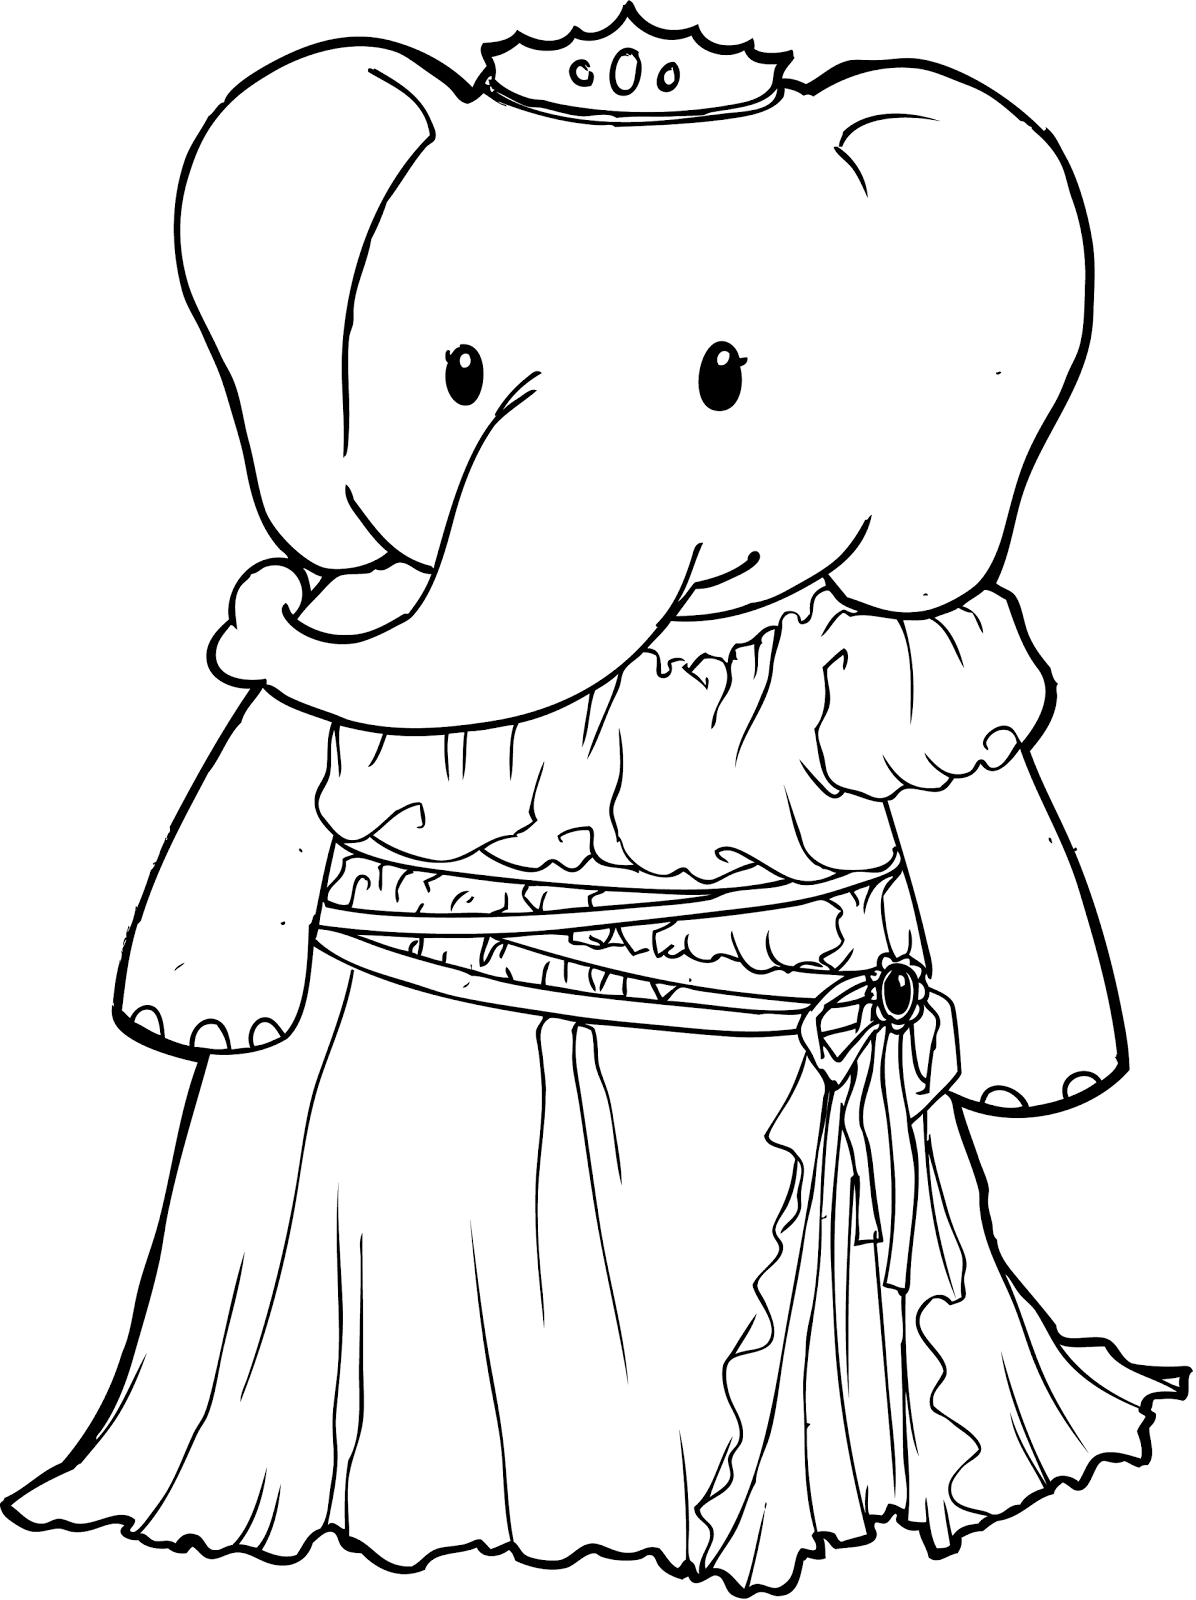 Coloring Rocks Elephant Coloring Page Princess Coloring Pages Cartoon Coloring Pages